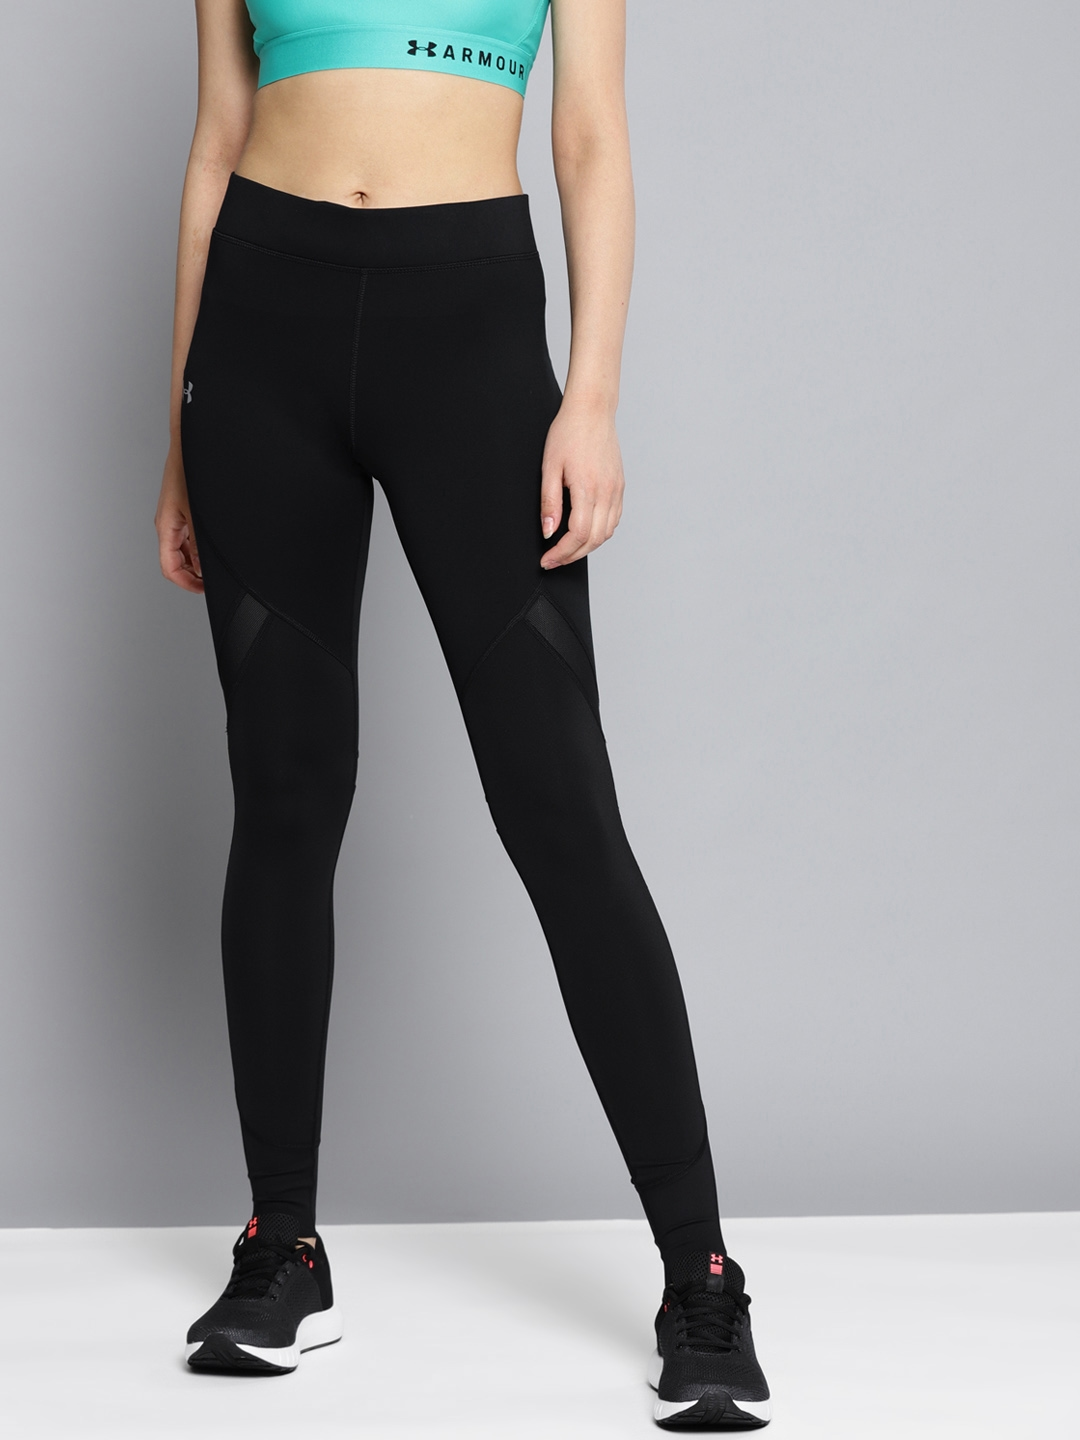 b35cd7654b75b5 UNDER ARMOUR Women Black Cold Gear Reactor SP Running Tights. This product  is already at its best price